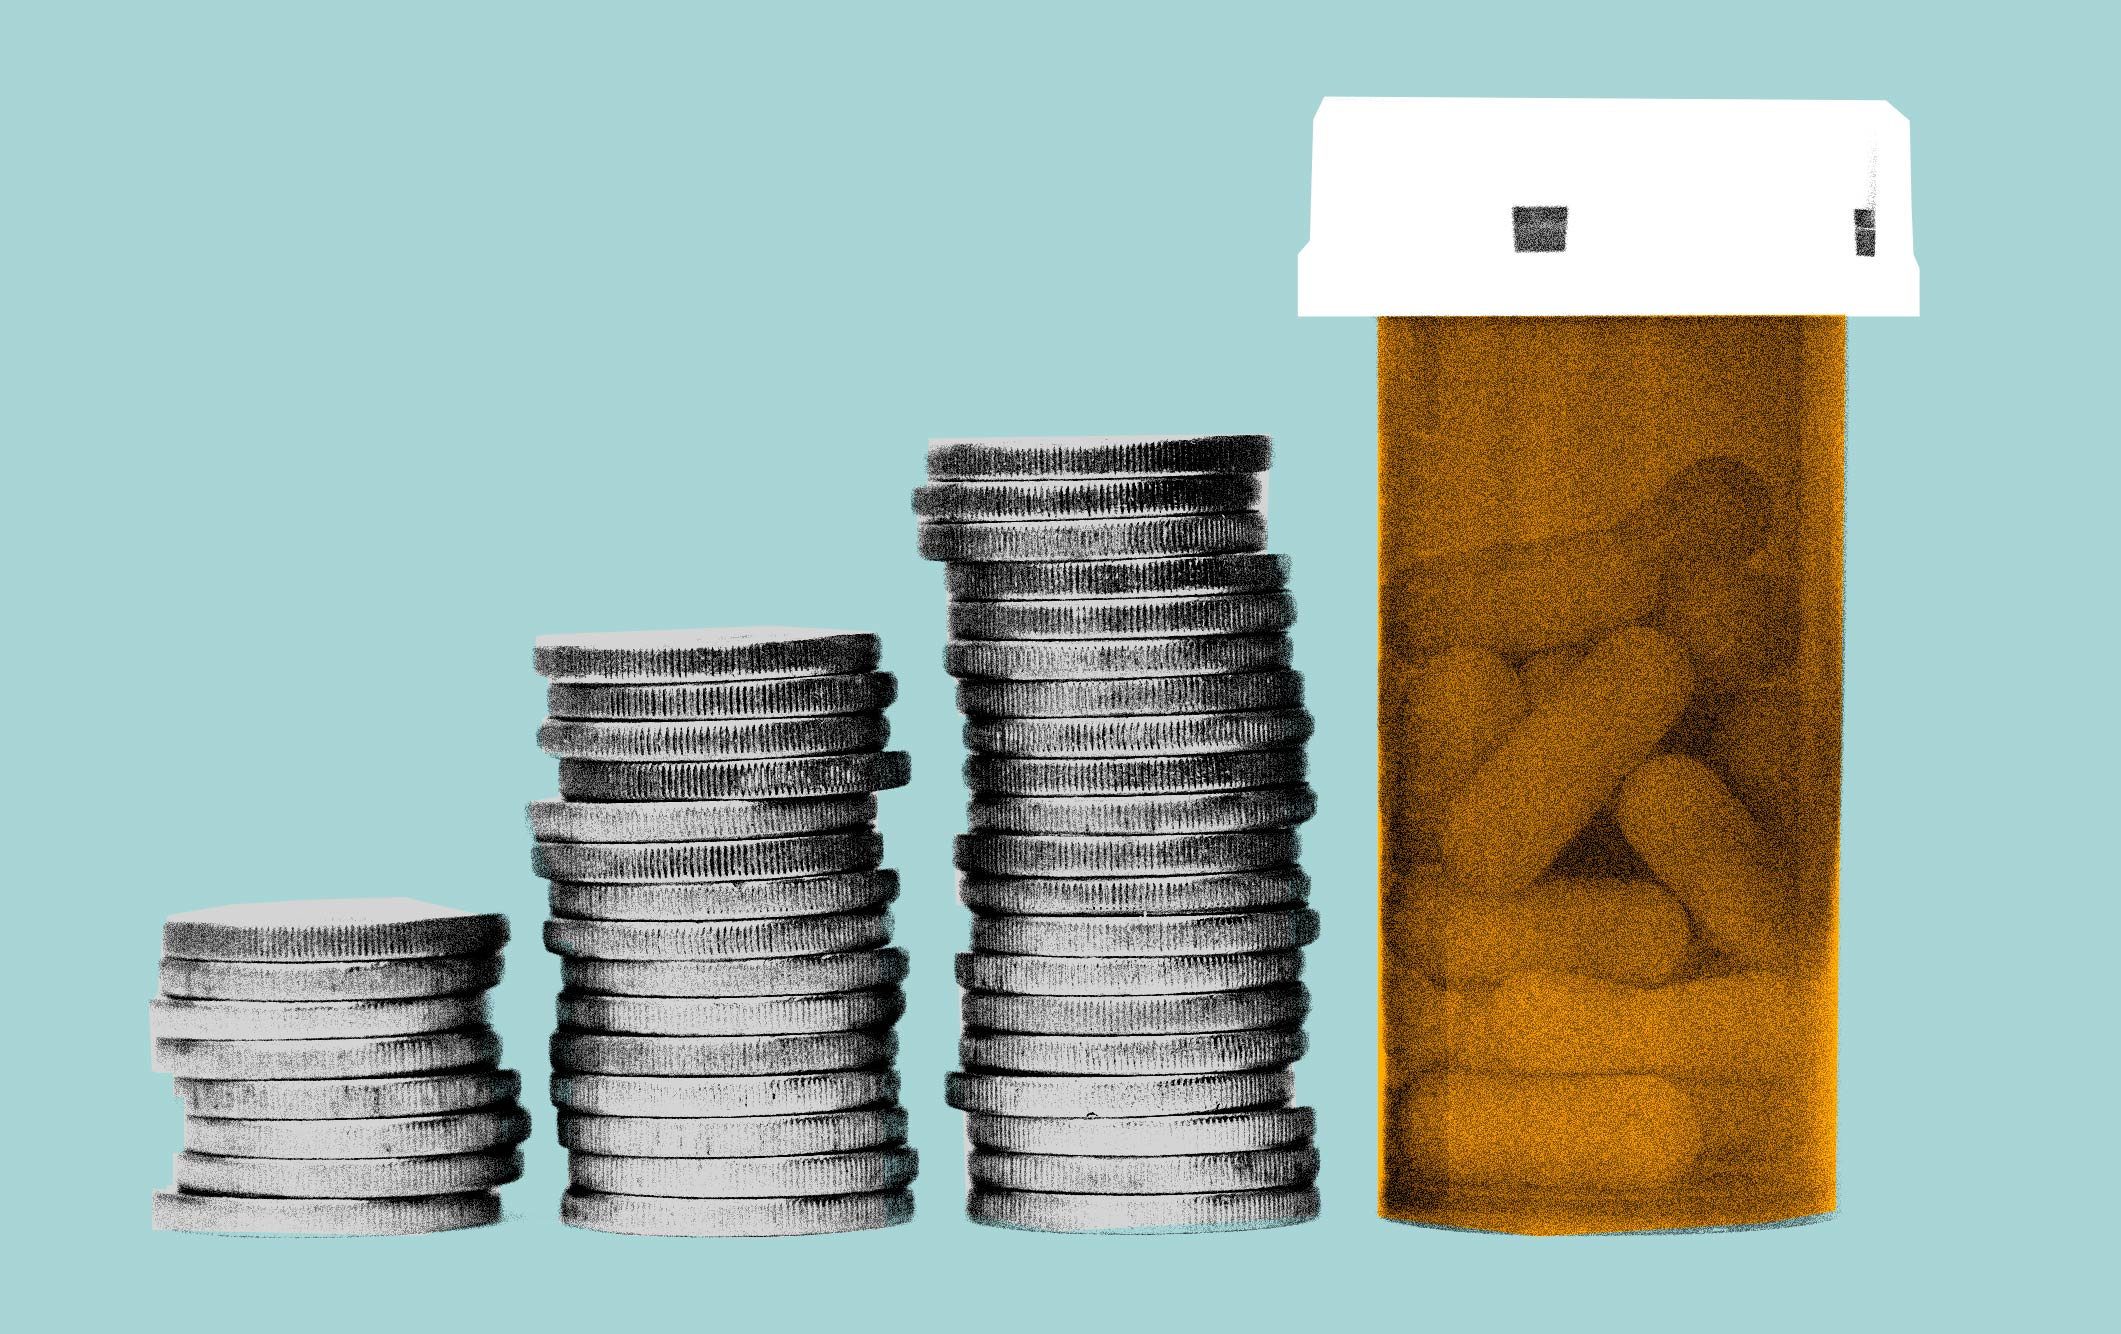 This Bottle of Pills Costs $20 in One State and $130 in Another